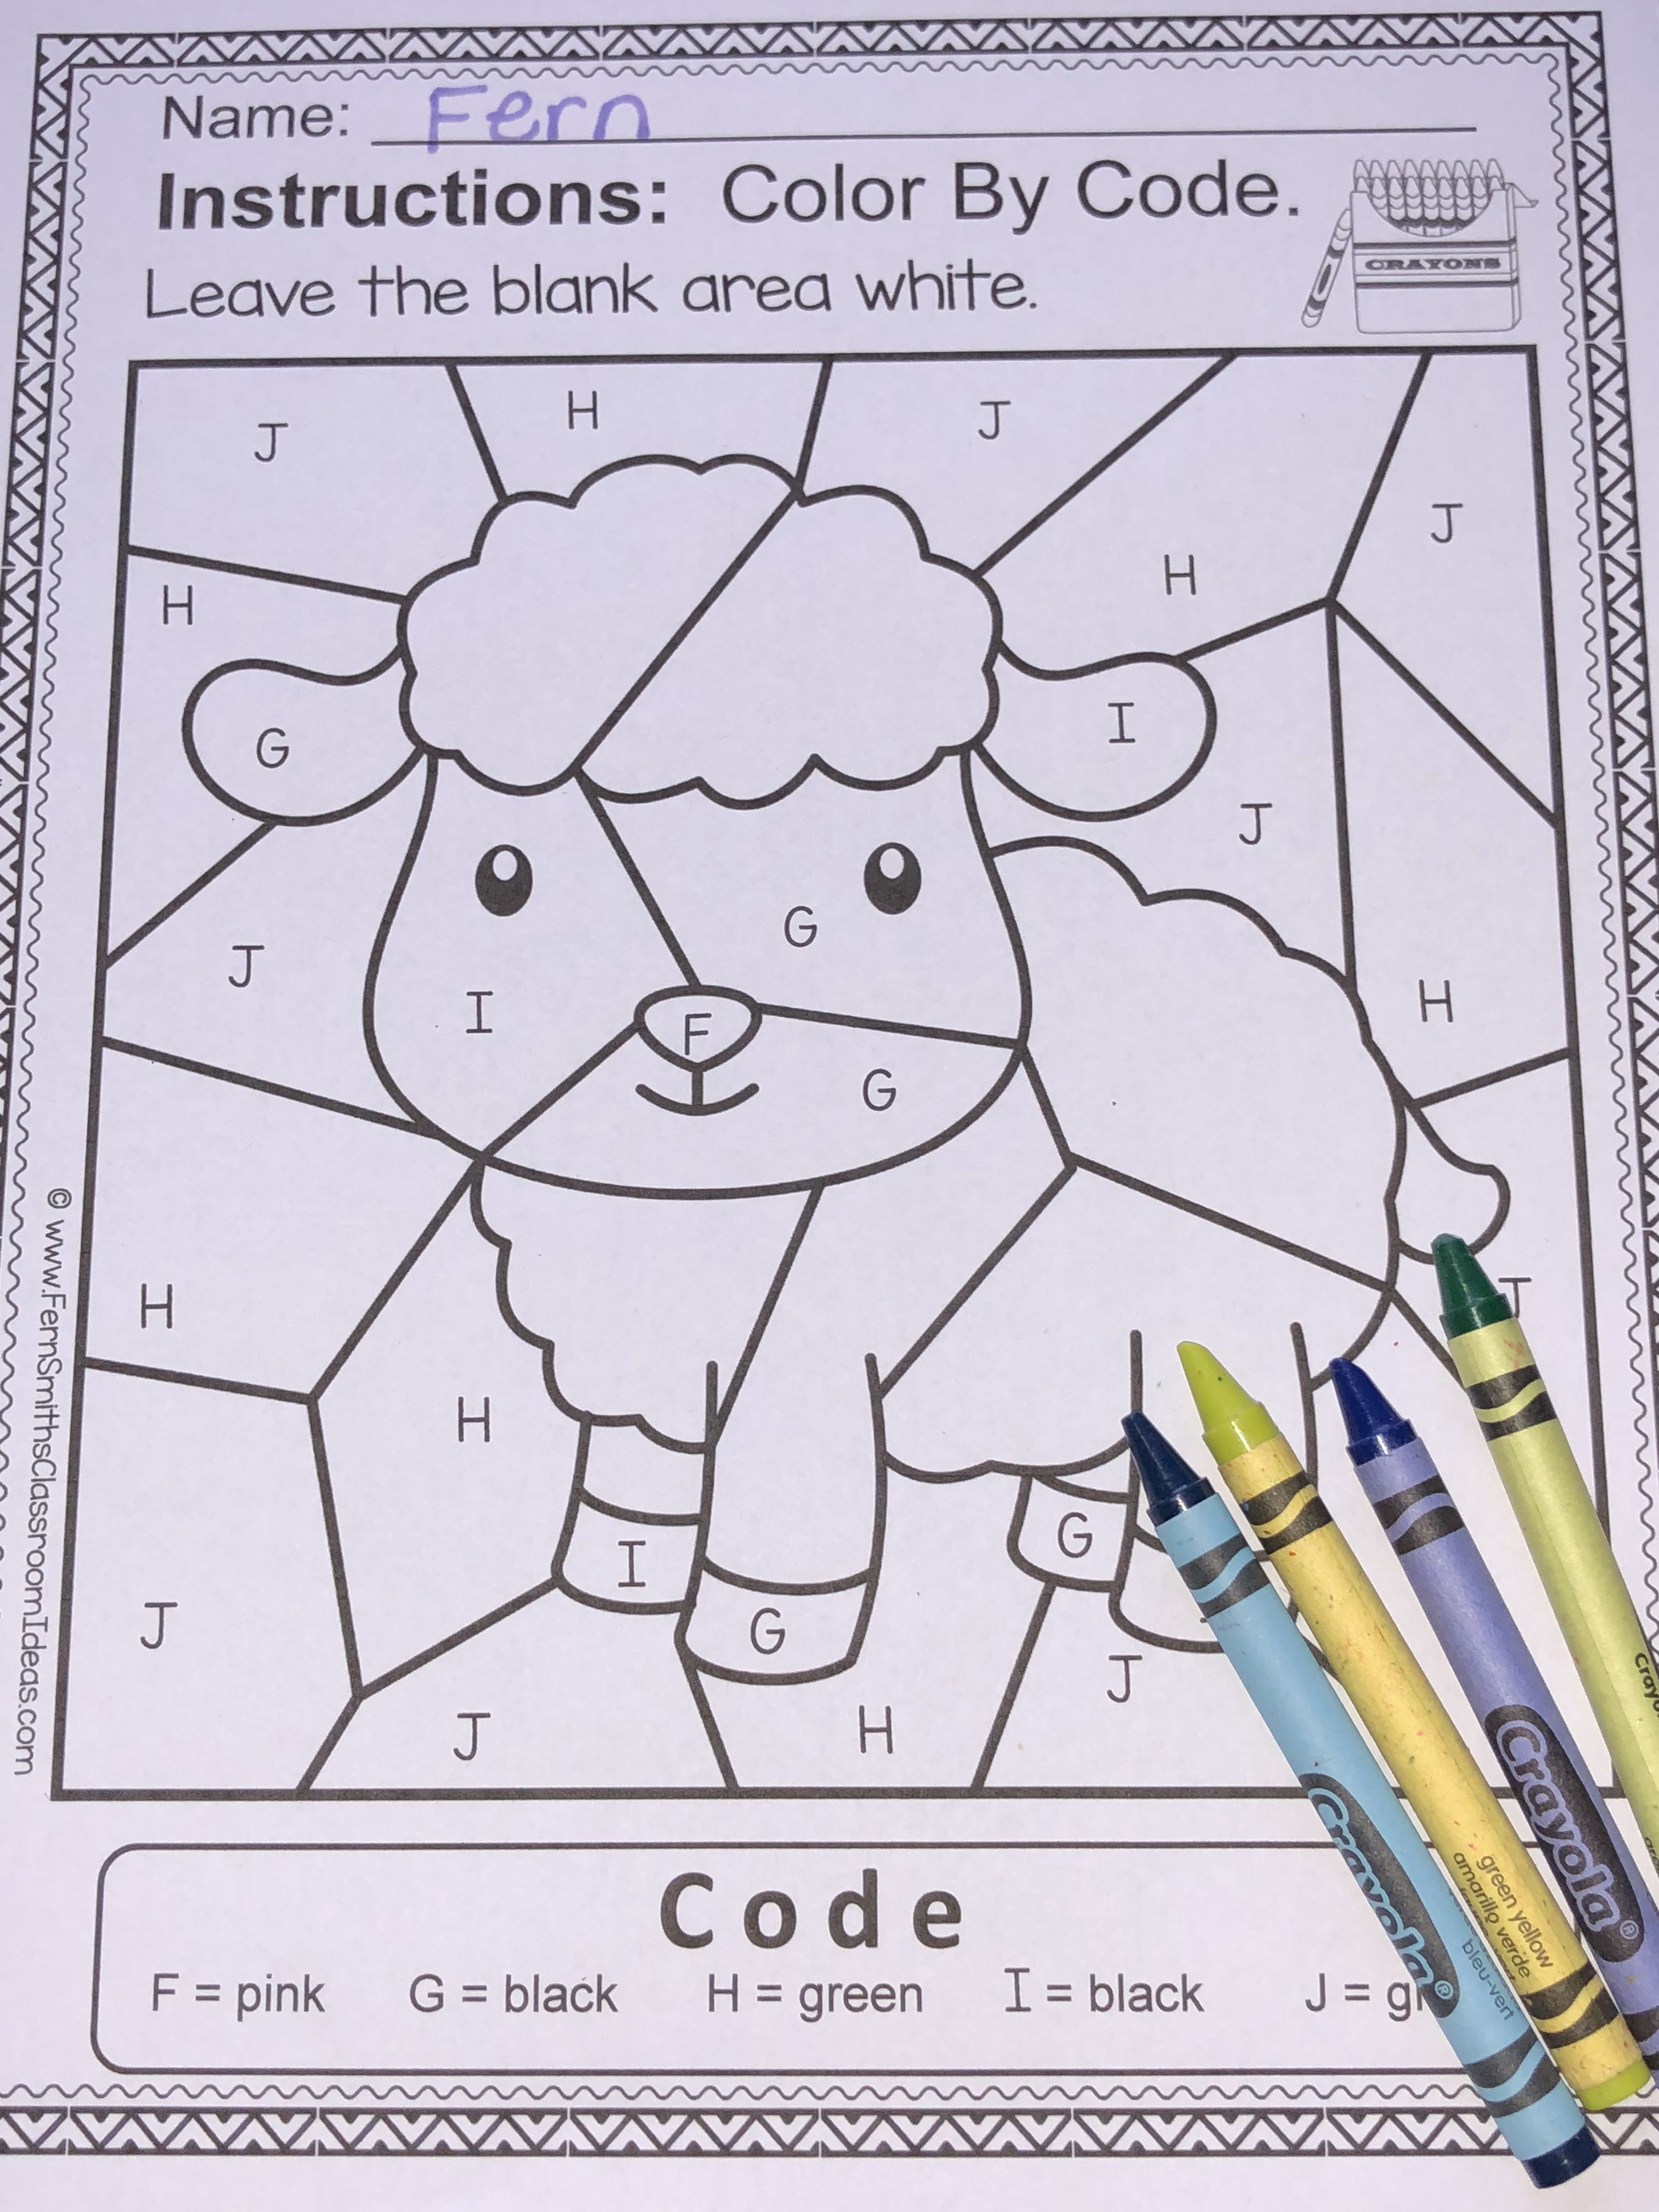 Alphabet Color By Code With Mary Had A Little Lamb For